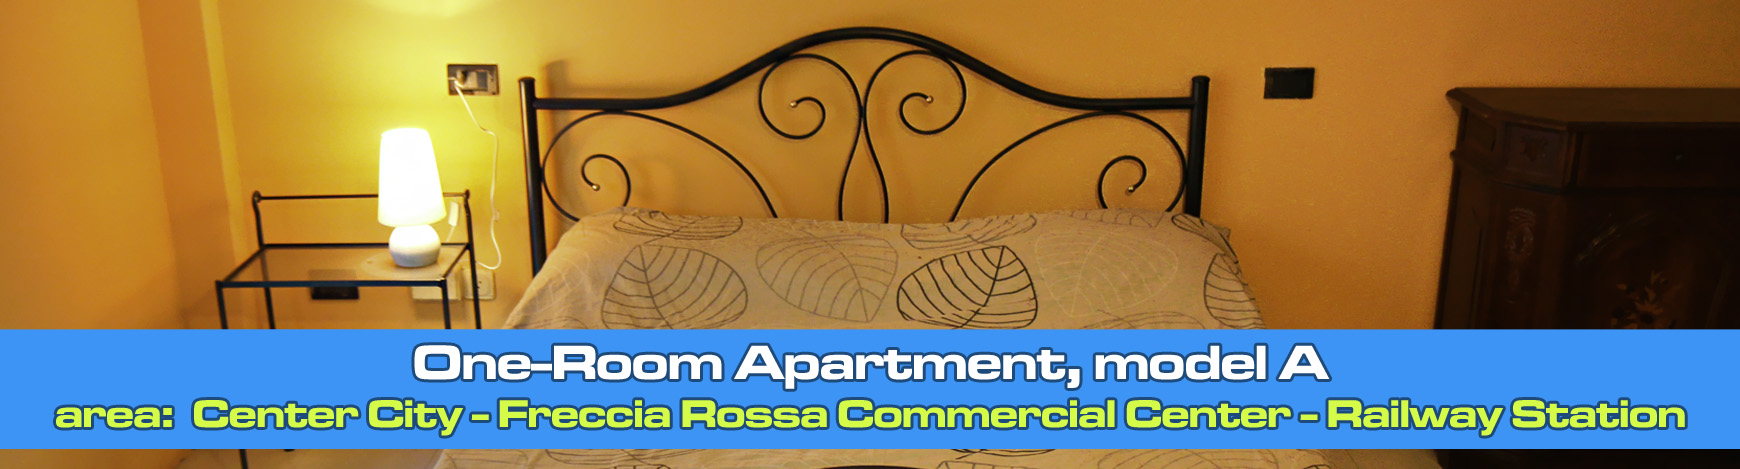 One Room apartment model A by Immobiliare Tagliaferri Via Brozzoni IMG 8278